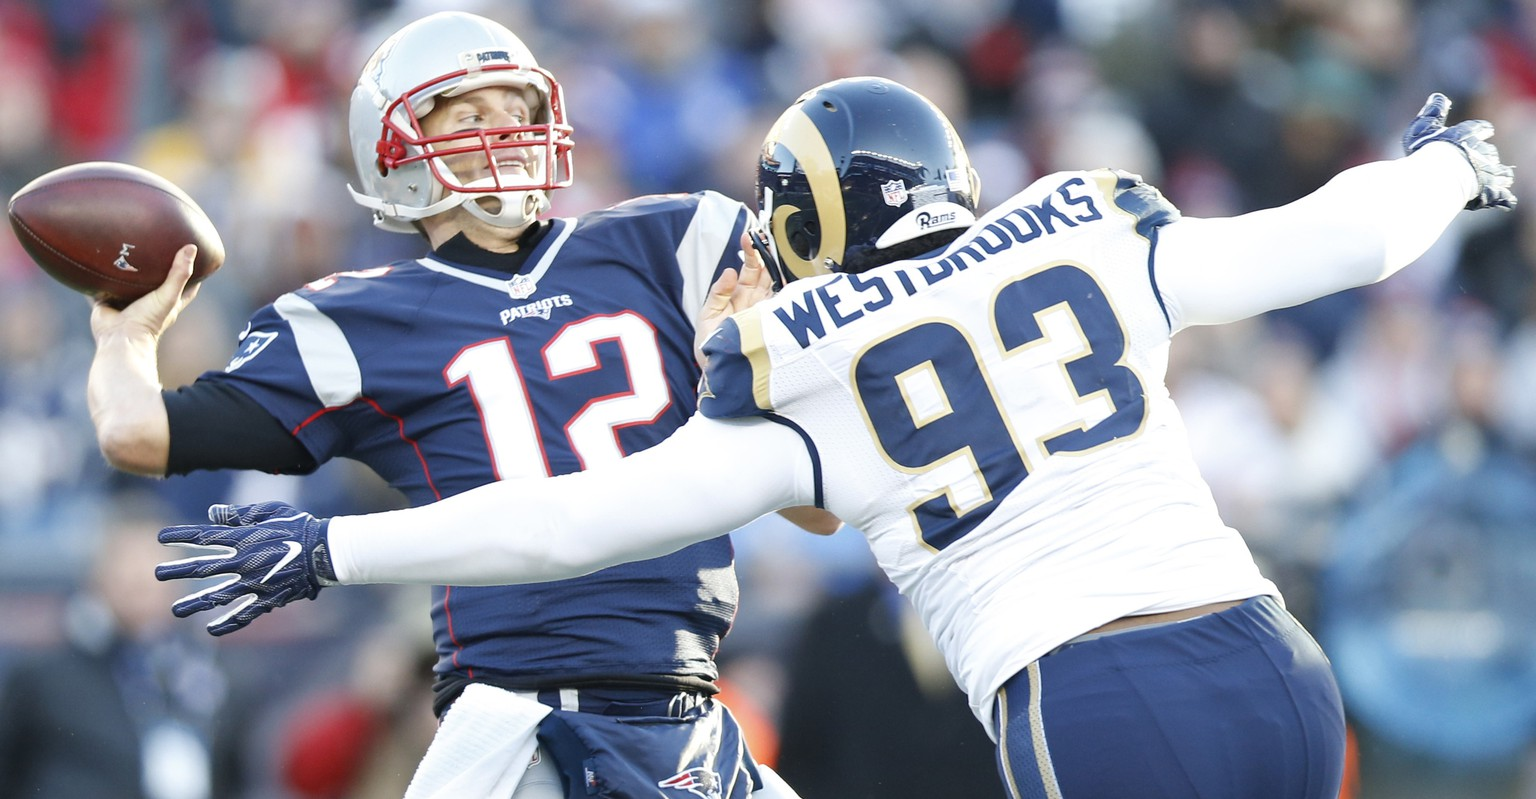 Dec 4, 2016; Foxborough, MA, USA;  New England Patriots quarterback Tom Brady (12) makes a pass as Los Angeles Rams defensive end Ethan Westbrooks (93) defends during the third quarter at Gillette Stadium. The Patriots won 26-10.  Mandatory Credit: Greg M. Cooper-USA TODAY Sports